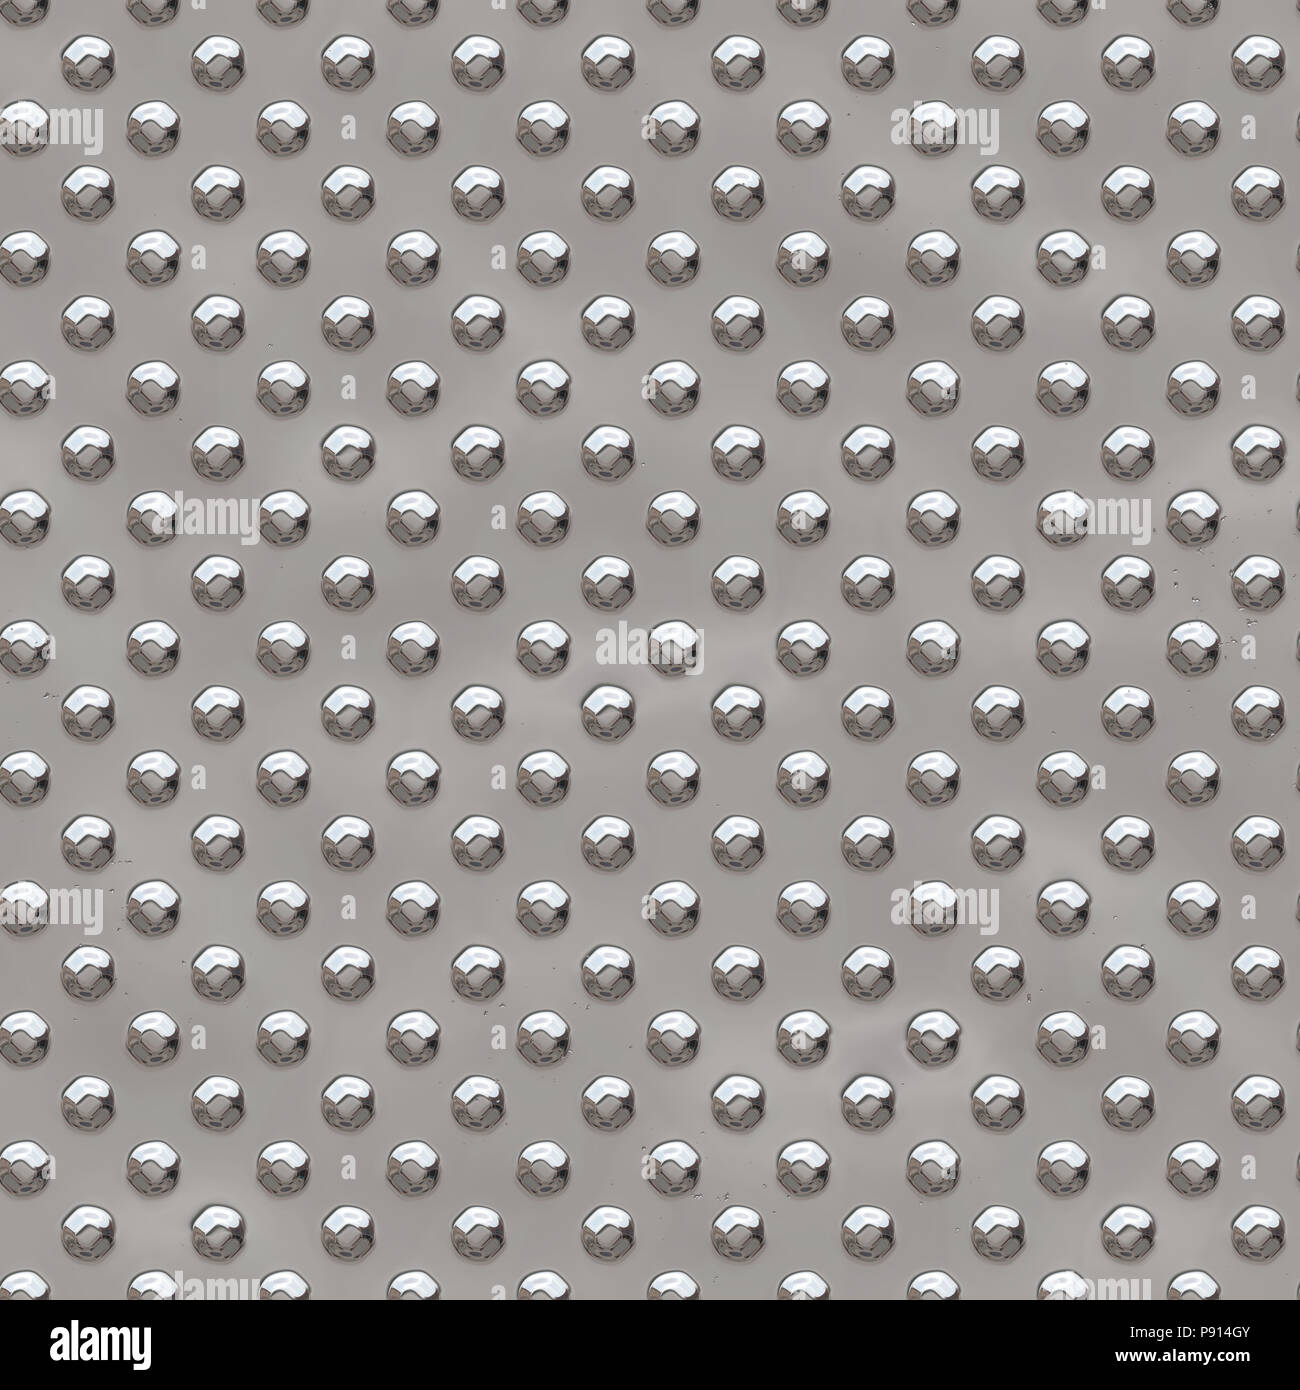 Silver shiny metal plate seamless pattern, or texture. - Stock Image